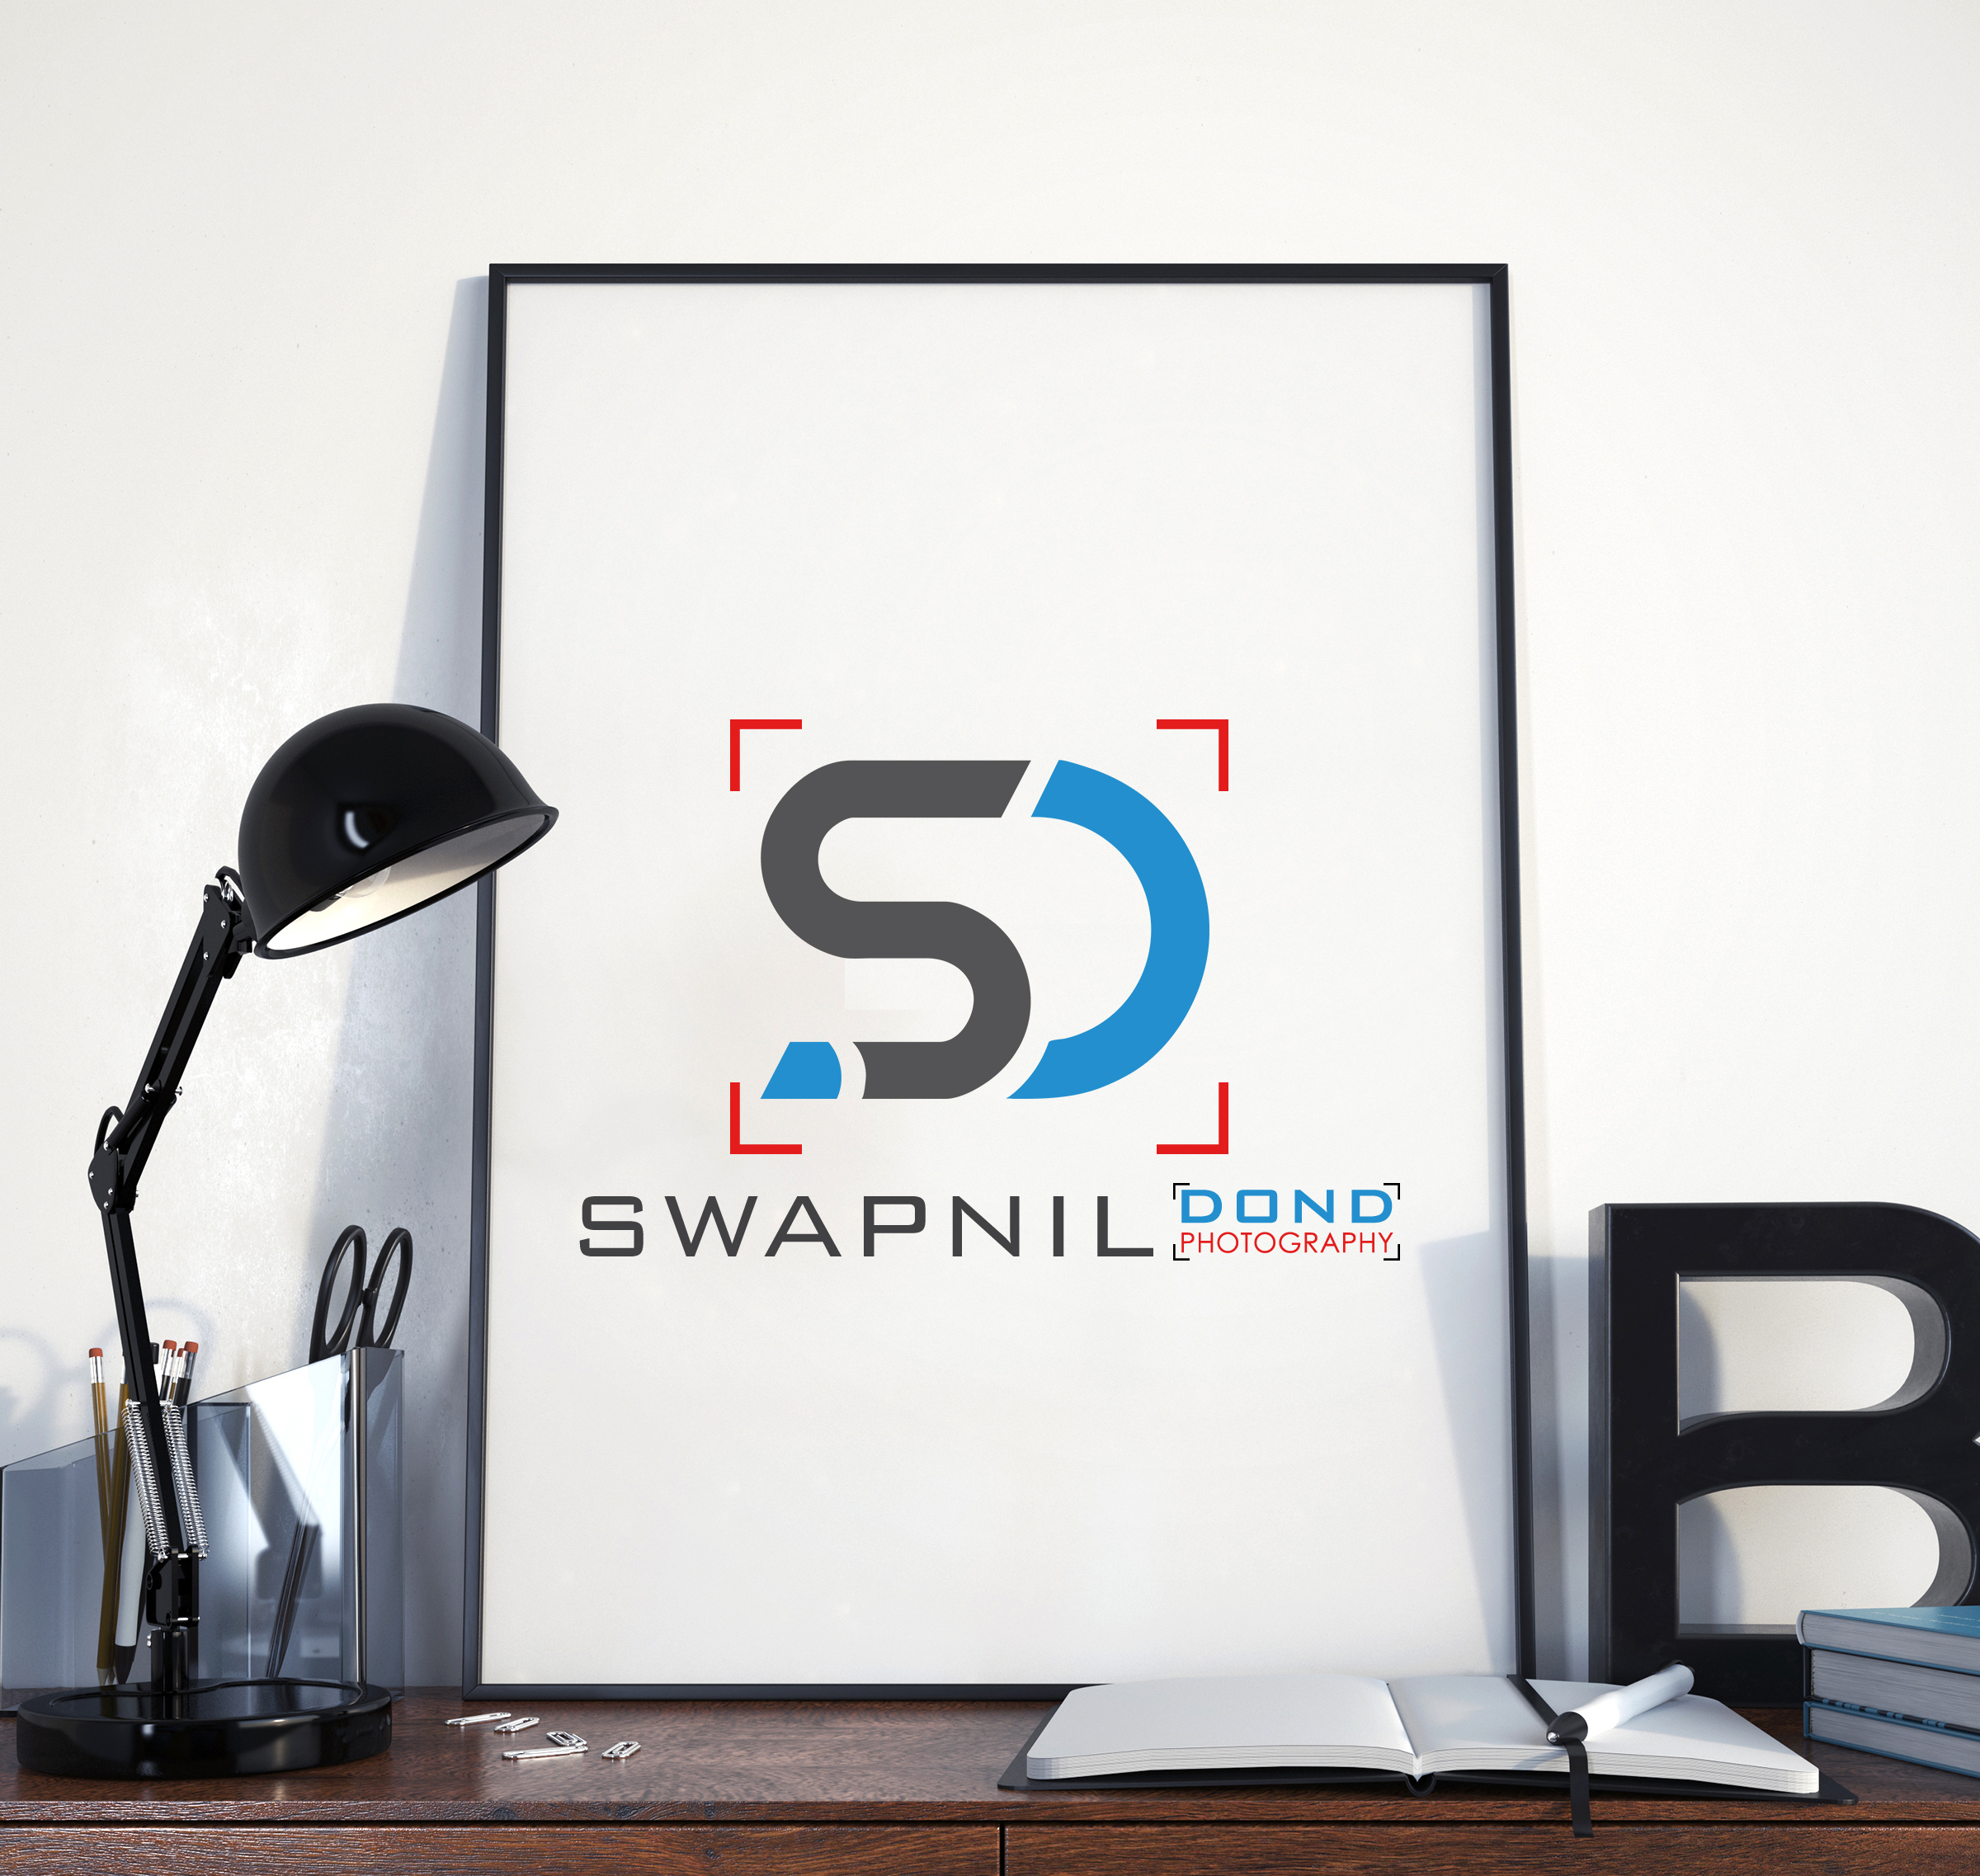 Swapnil dond photography logo design by Badri Design